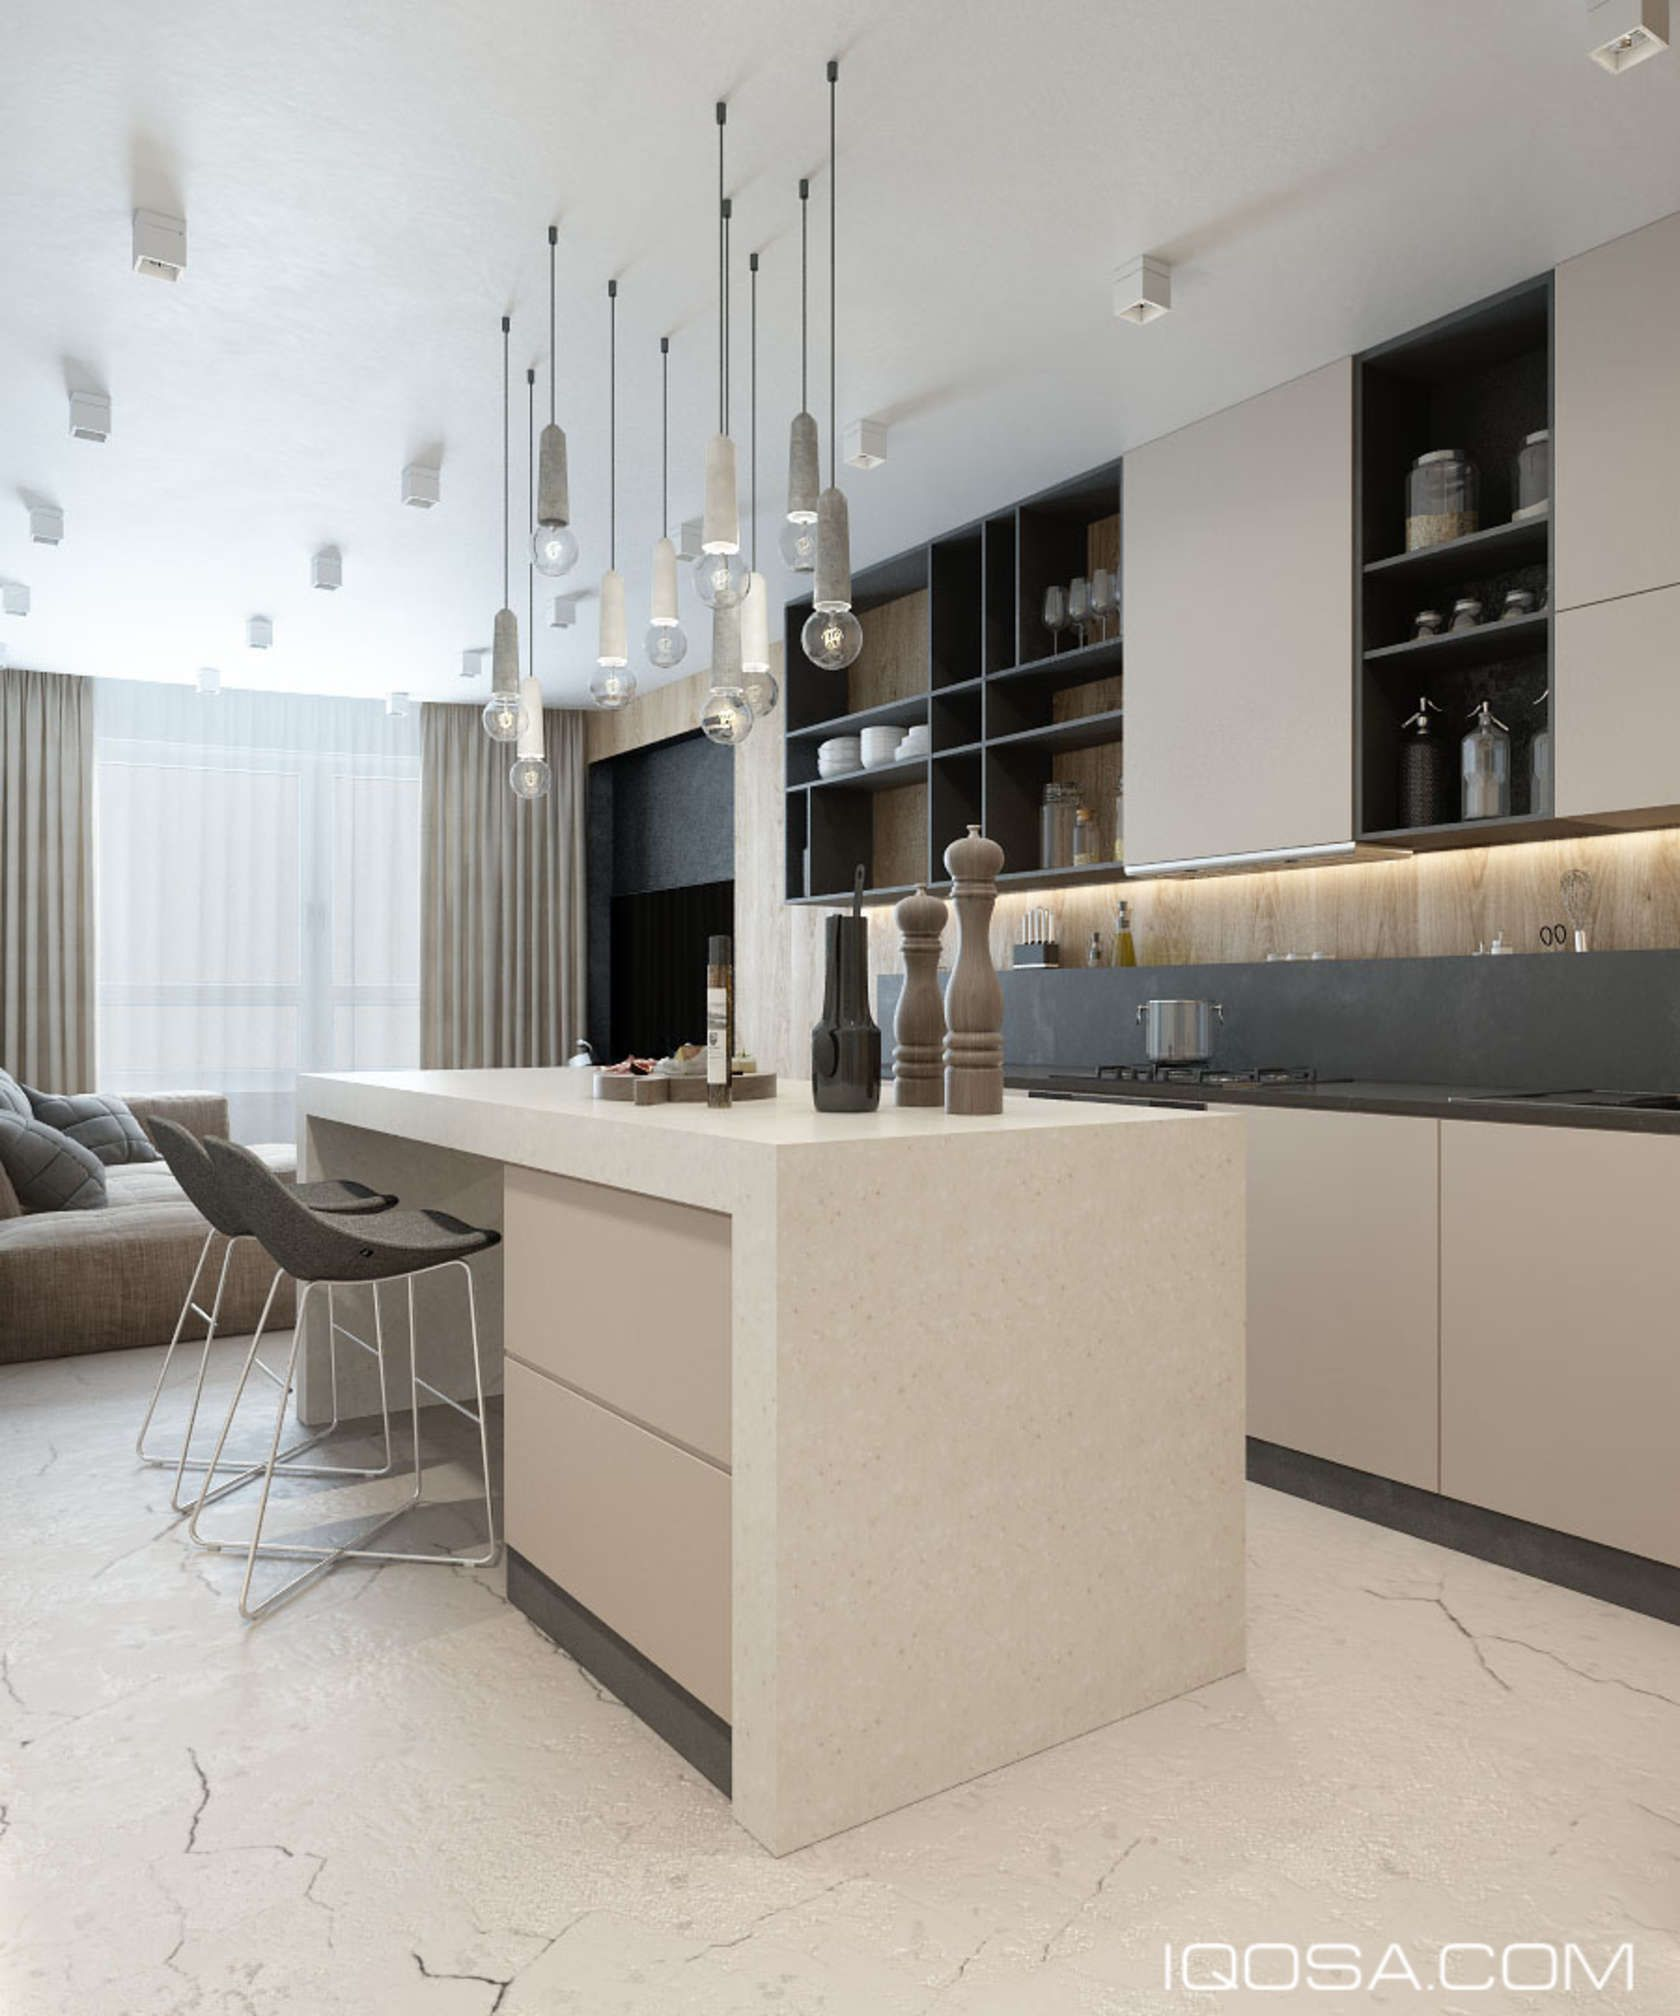 An Approachable Take On Luxury Apartment Design | Pinterest | Devis ...